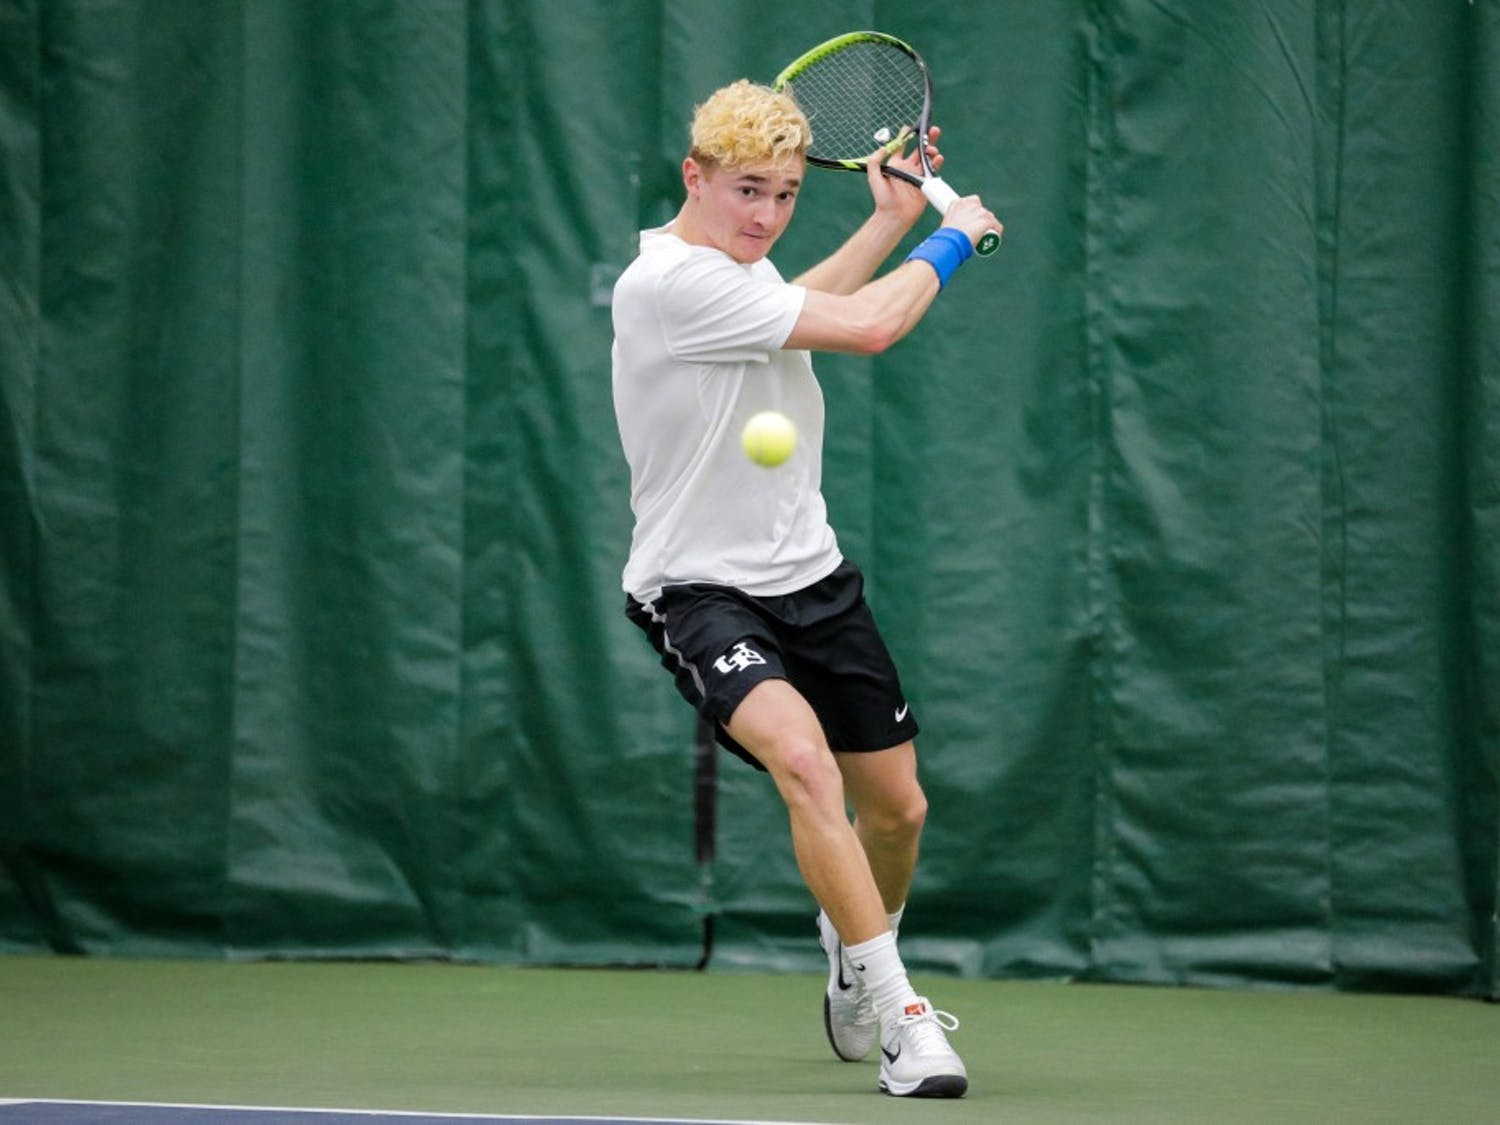 Freshman Nickolas Frisk prepares to hit the ball with a back hand. The Bulls picked up two wins this weekend to improve its conference record to 3-1.